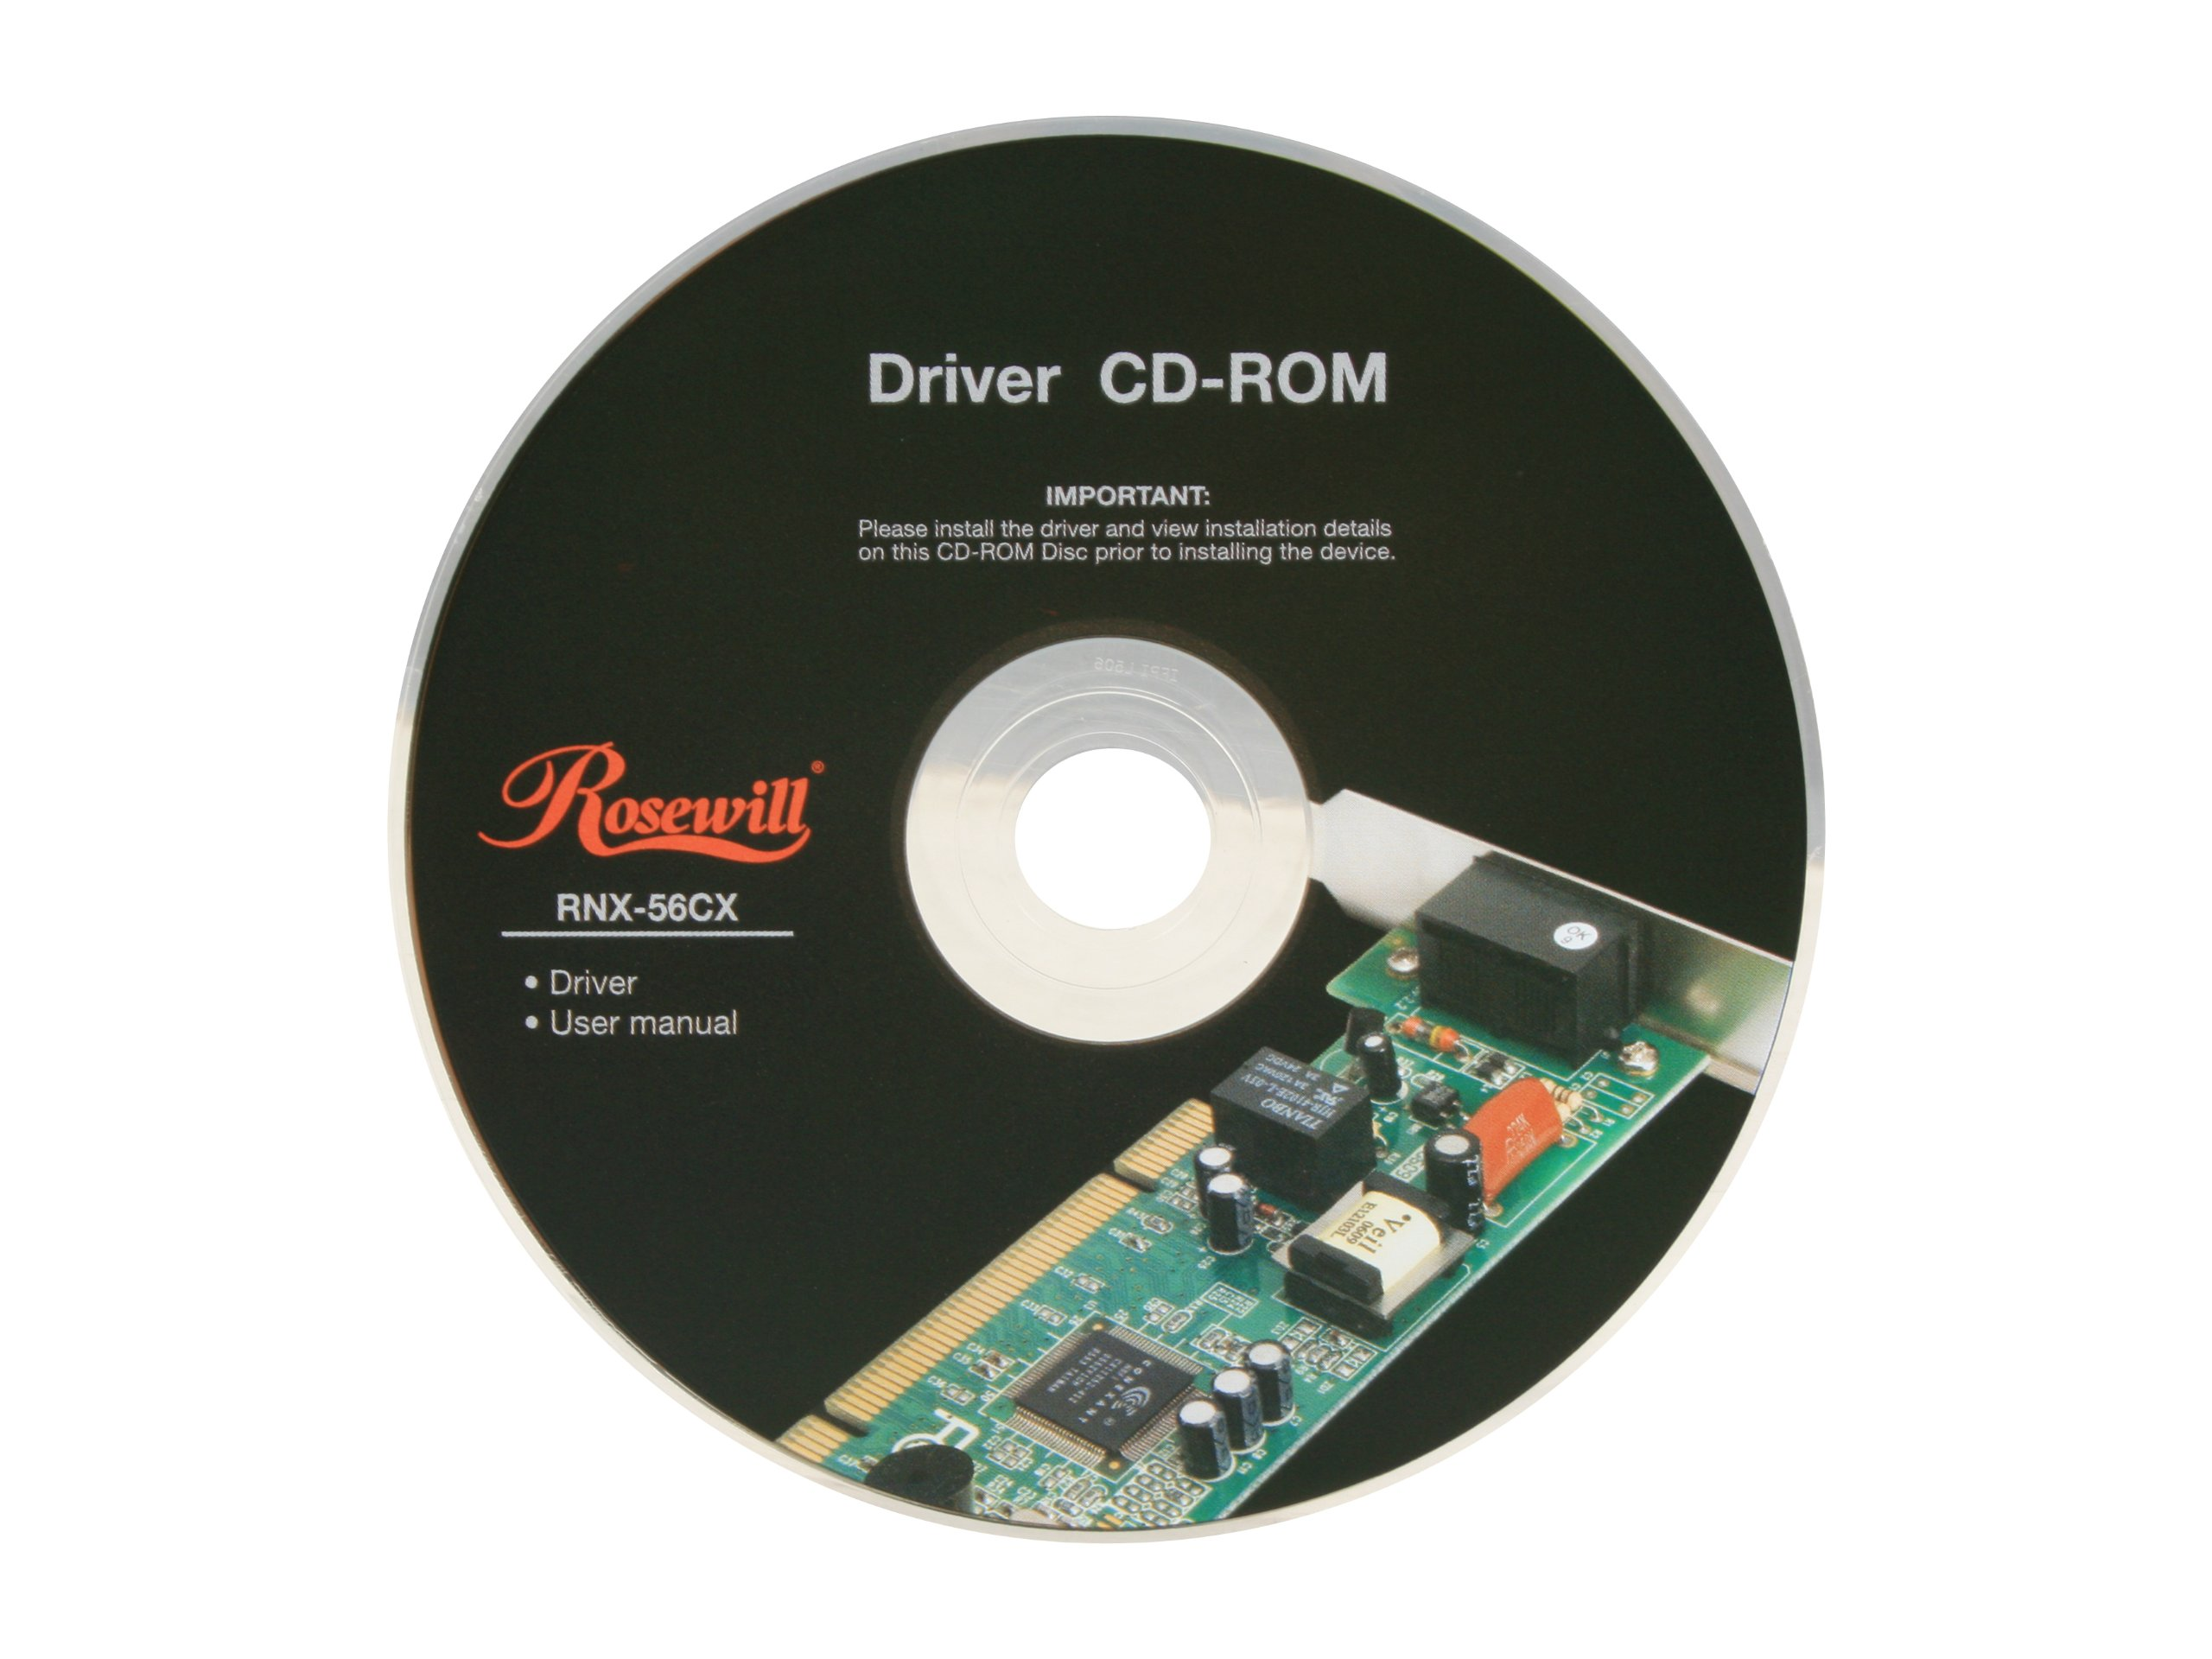 Rosewill 56Kbps PCI Internal Network Card (RNX-56CX)